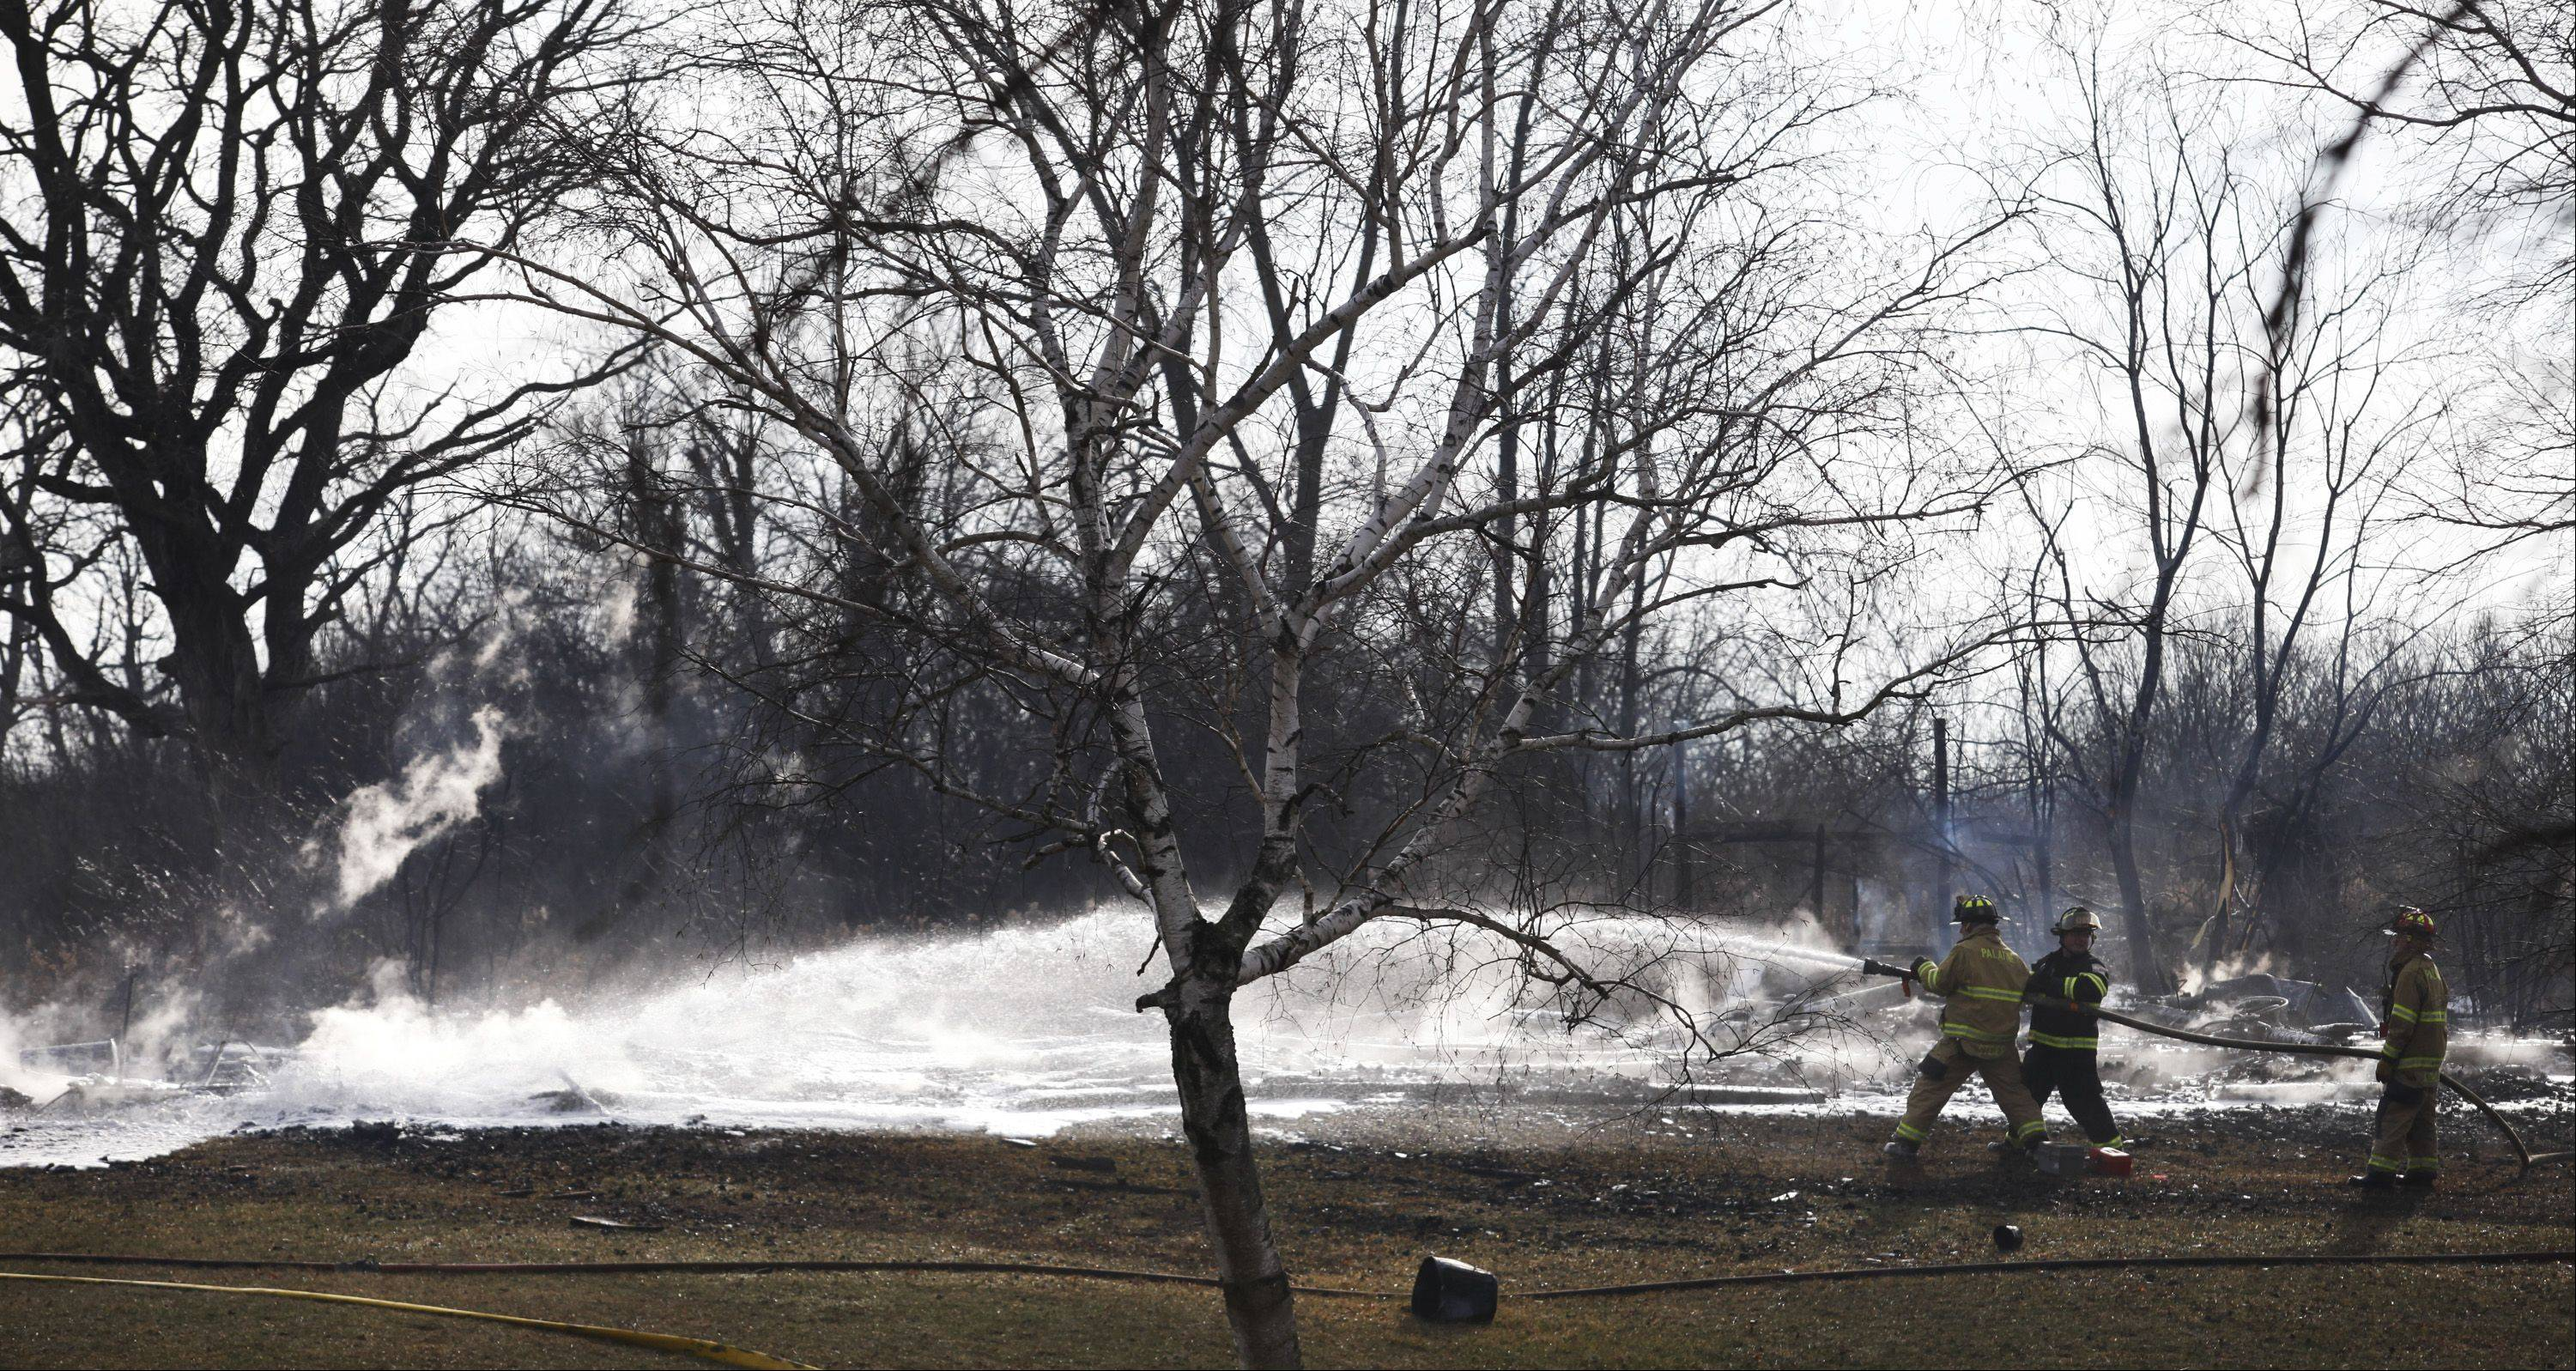 Firefighters pour water on the remnants of a barn fire Tuesday afternoon at a Cook County Forest Preserve District watchman�s residence along Penny Road.